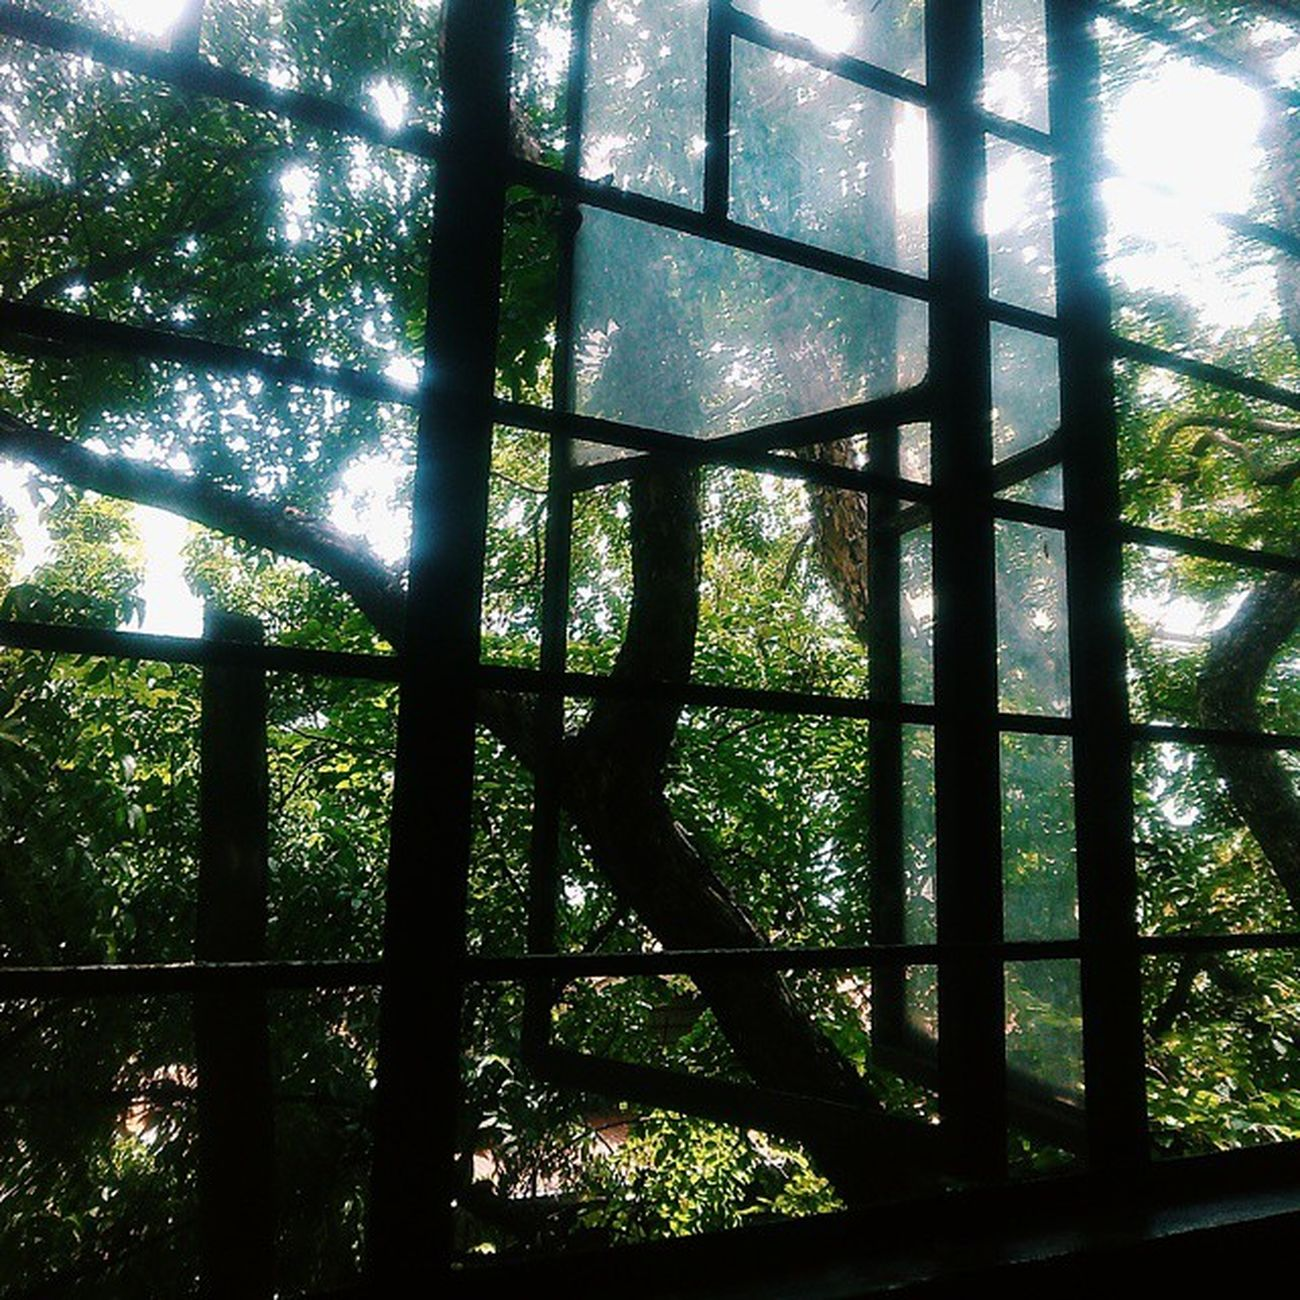 The ever horrible ACAD bldg ××××× Vscocam